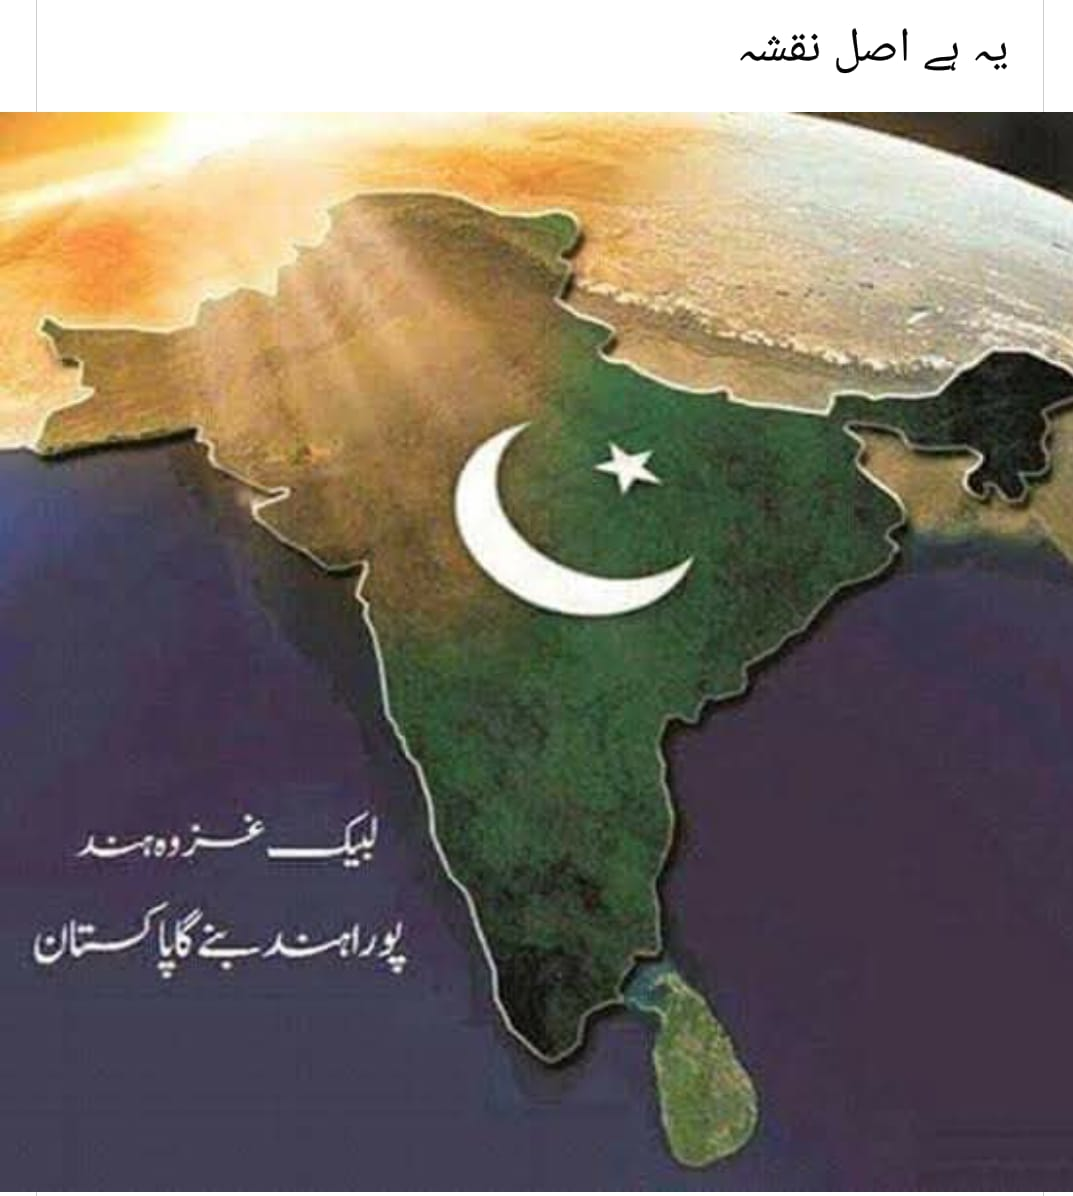 This is the real map!! لبیک غزوہ ہند پورا ہند بنے گا پاکستان انشاءاللہ #5thAugustBlackDay